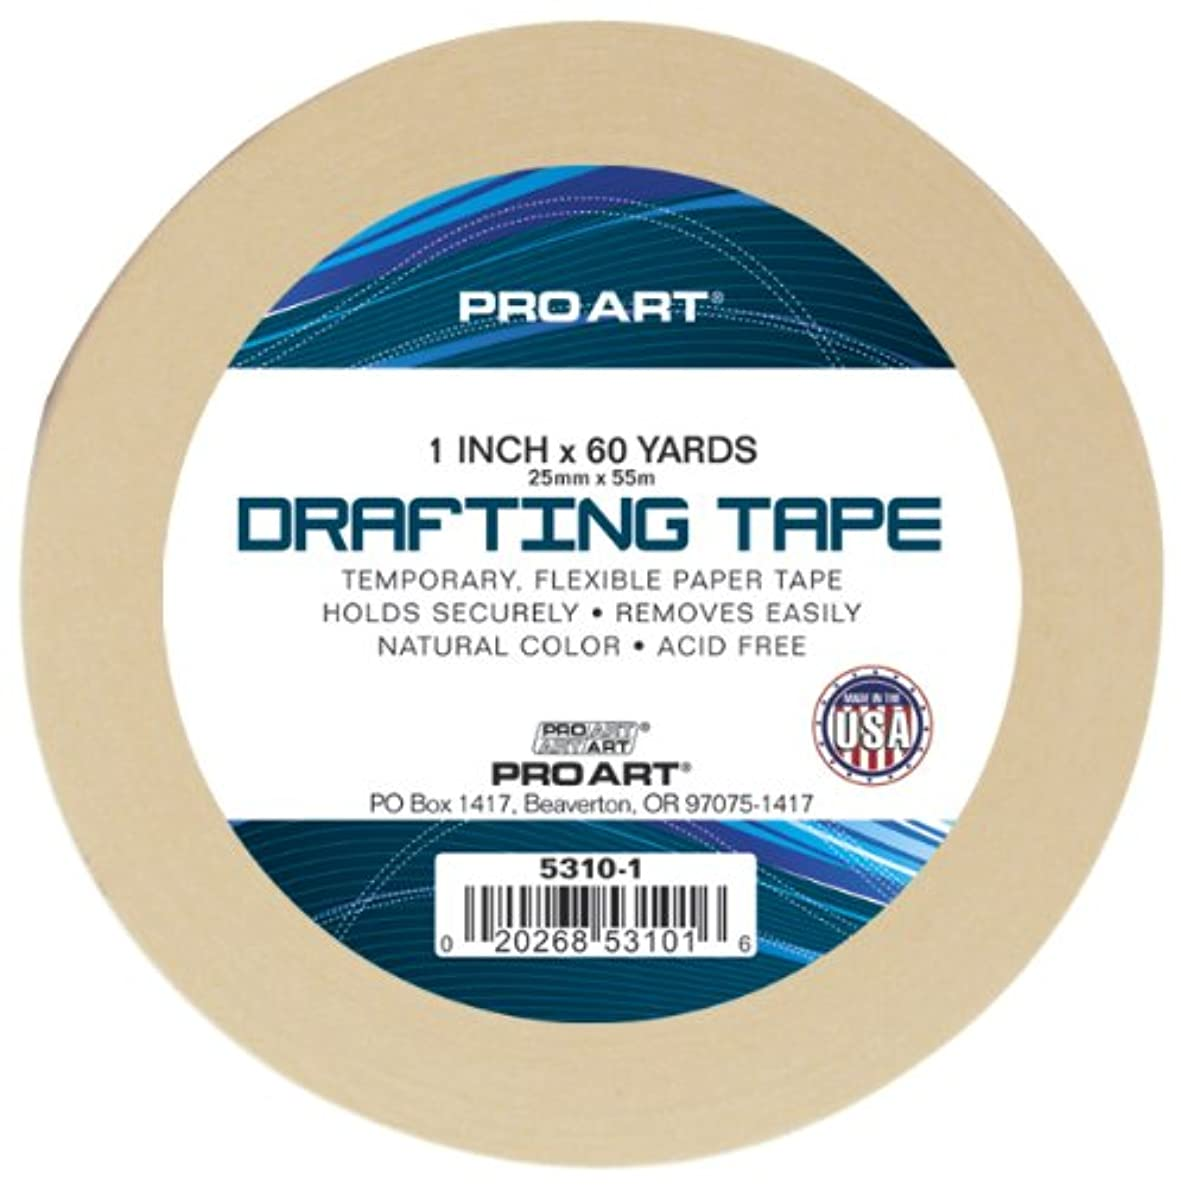 PRO ART 1-Inch by 60-Yard Drafting Tape